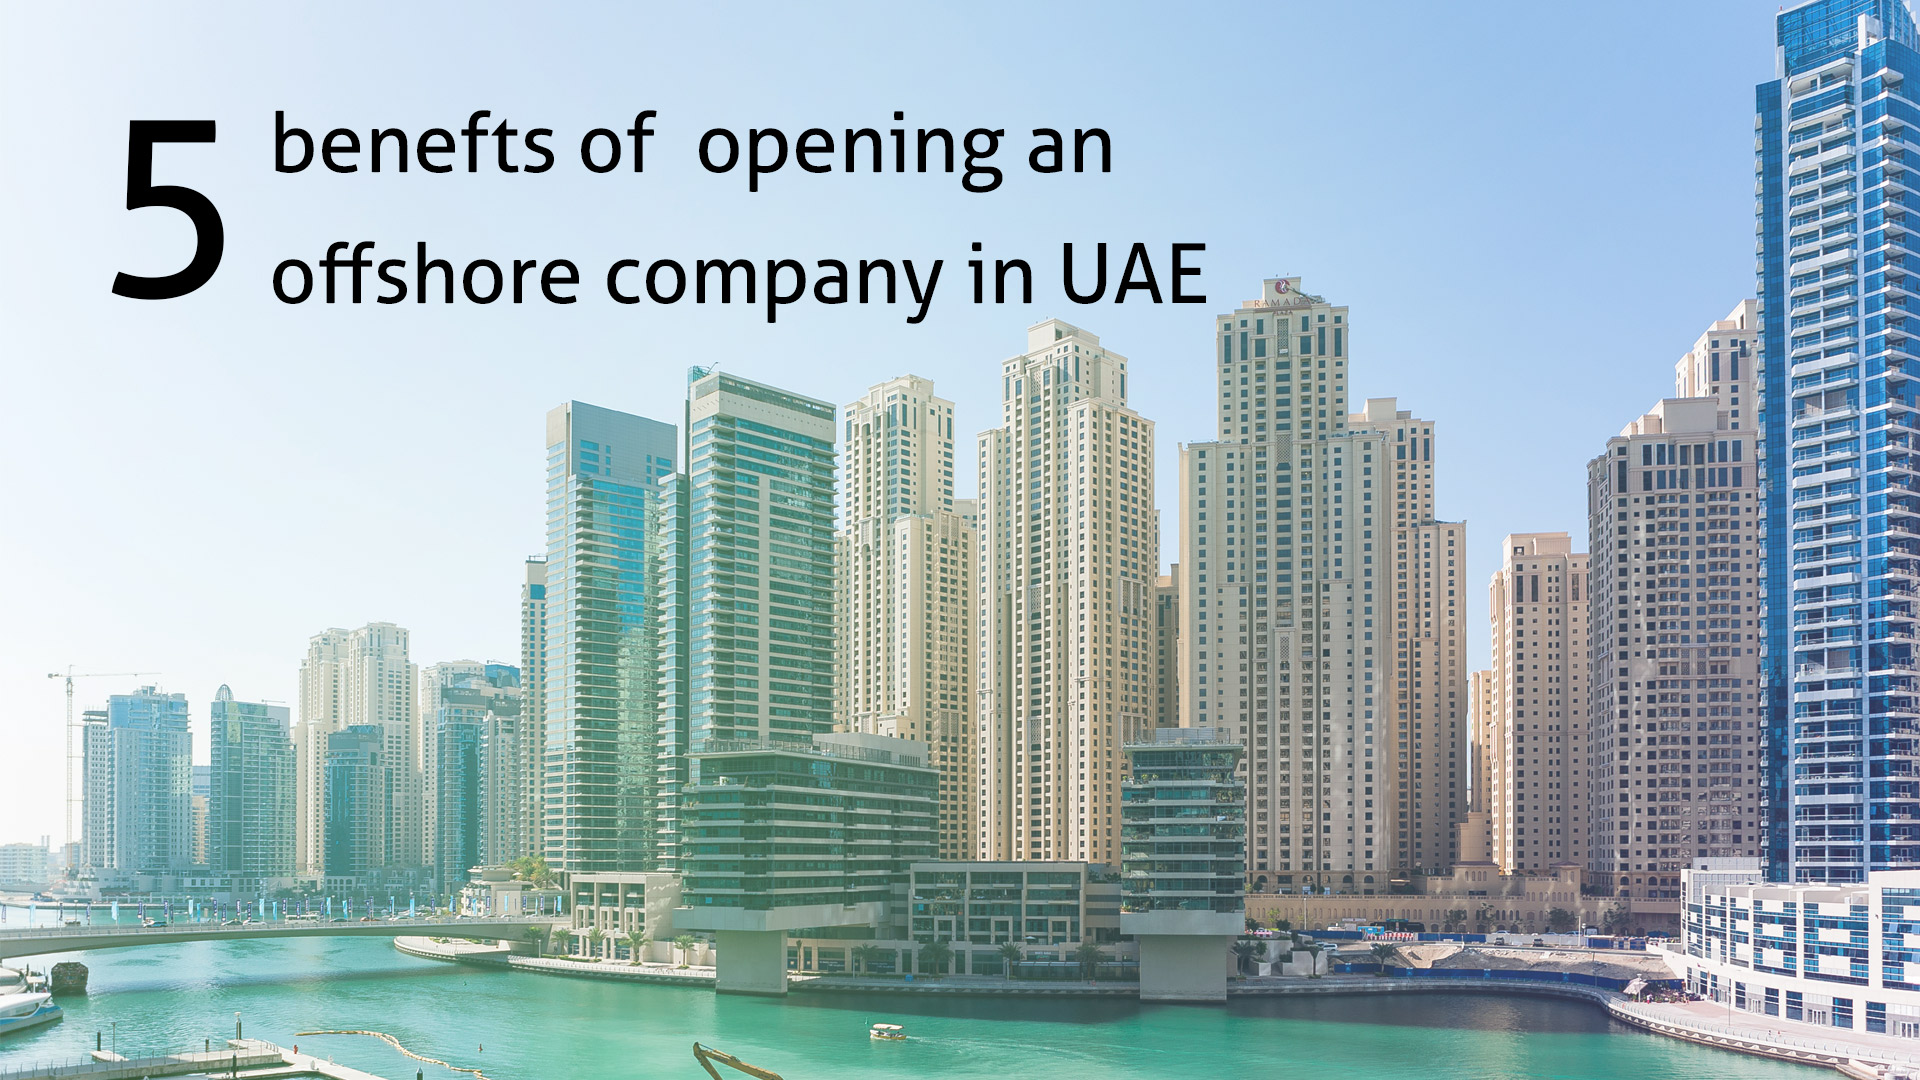 5 benefts of setting up an offshore company in UAE